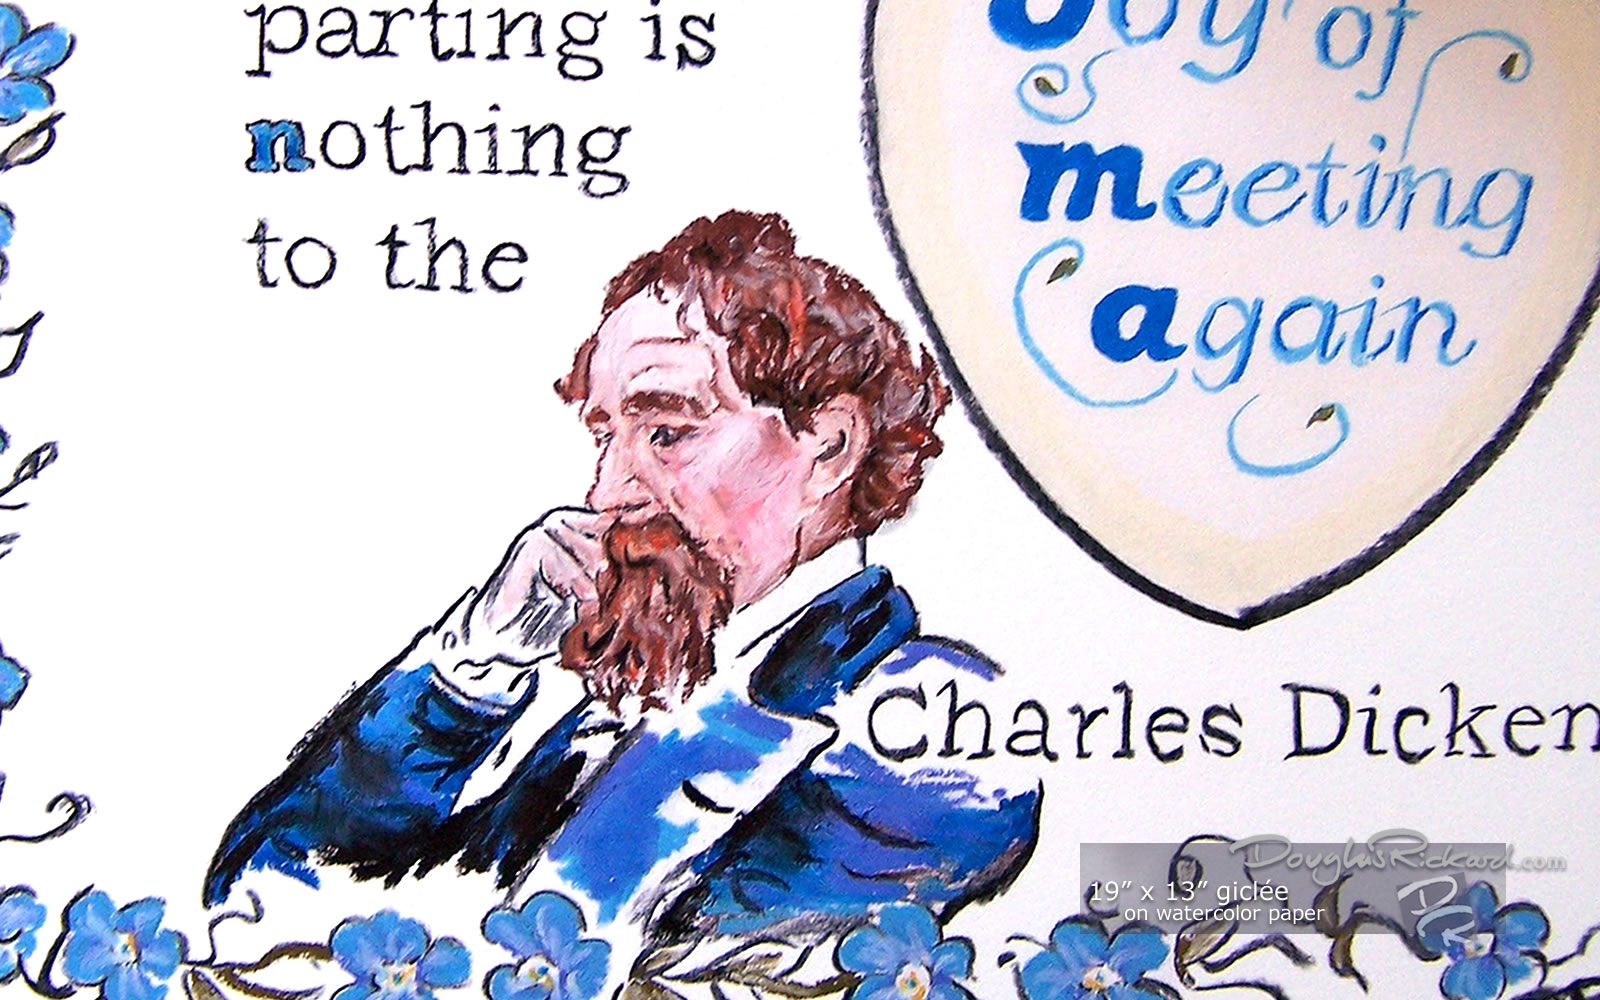 Charles Dickens's quote